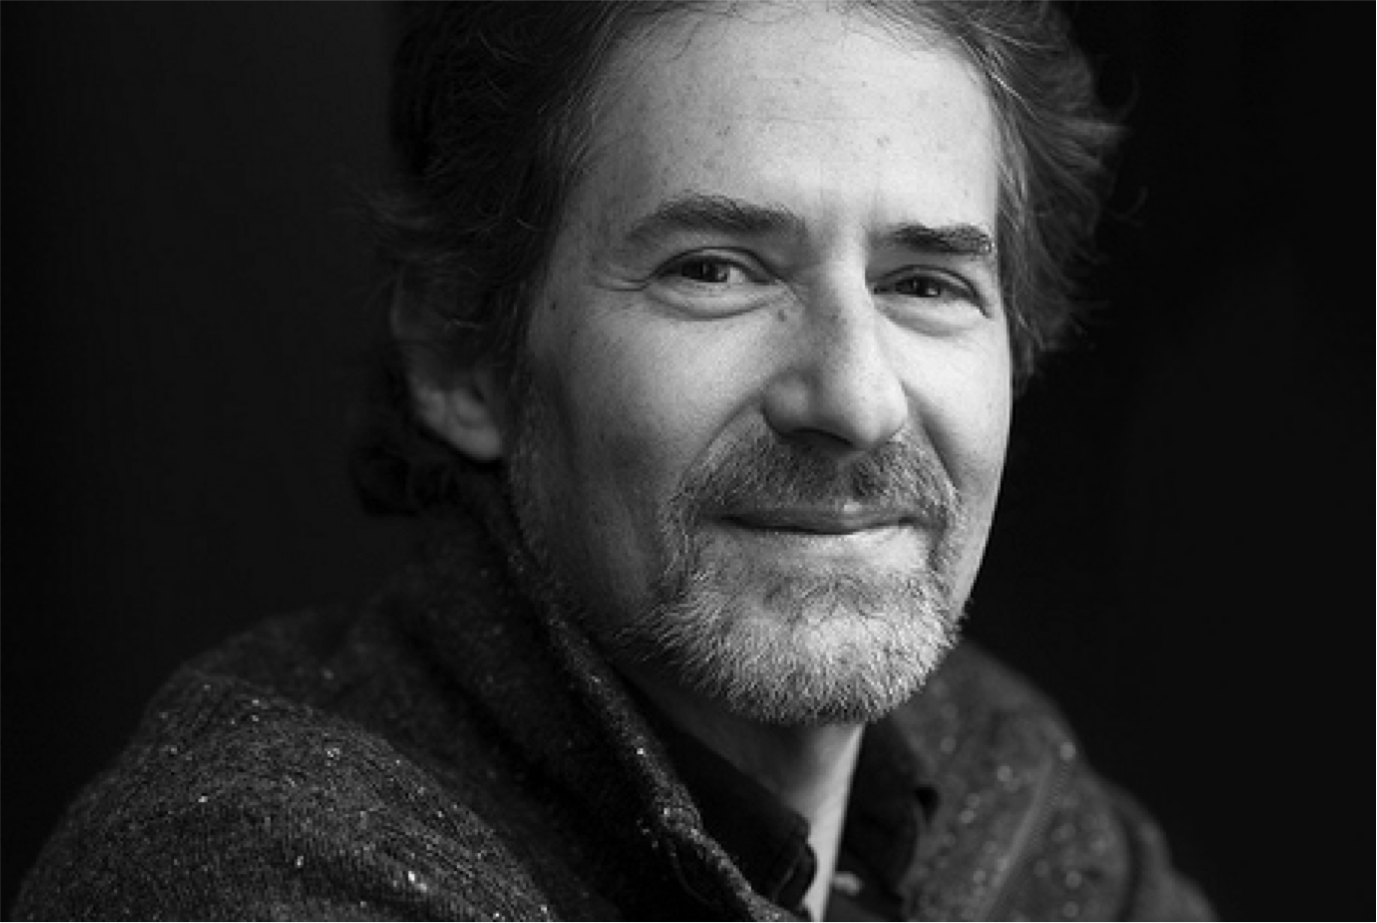 James Horner fallece en accidente aéreo